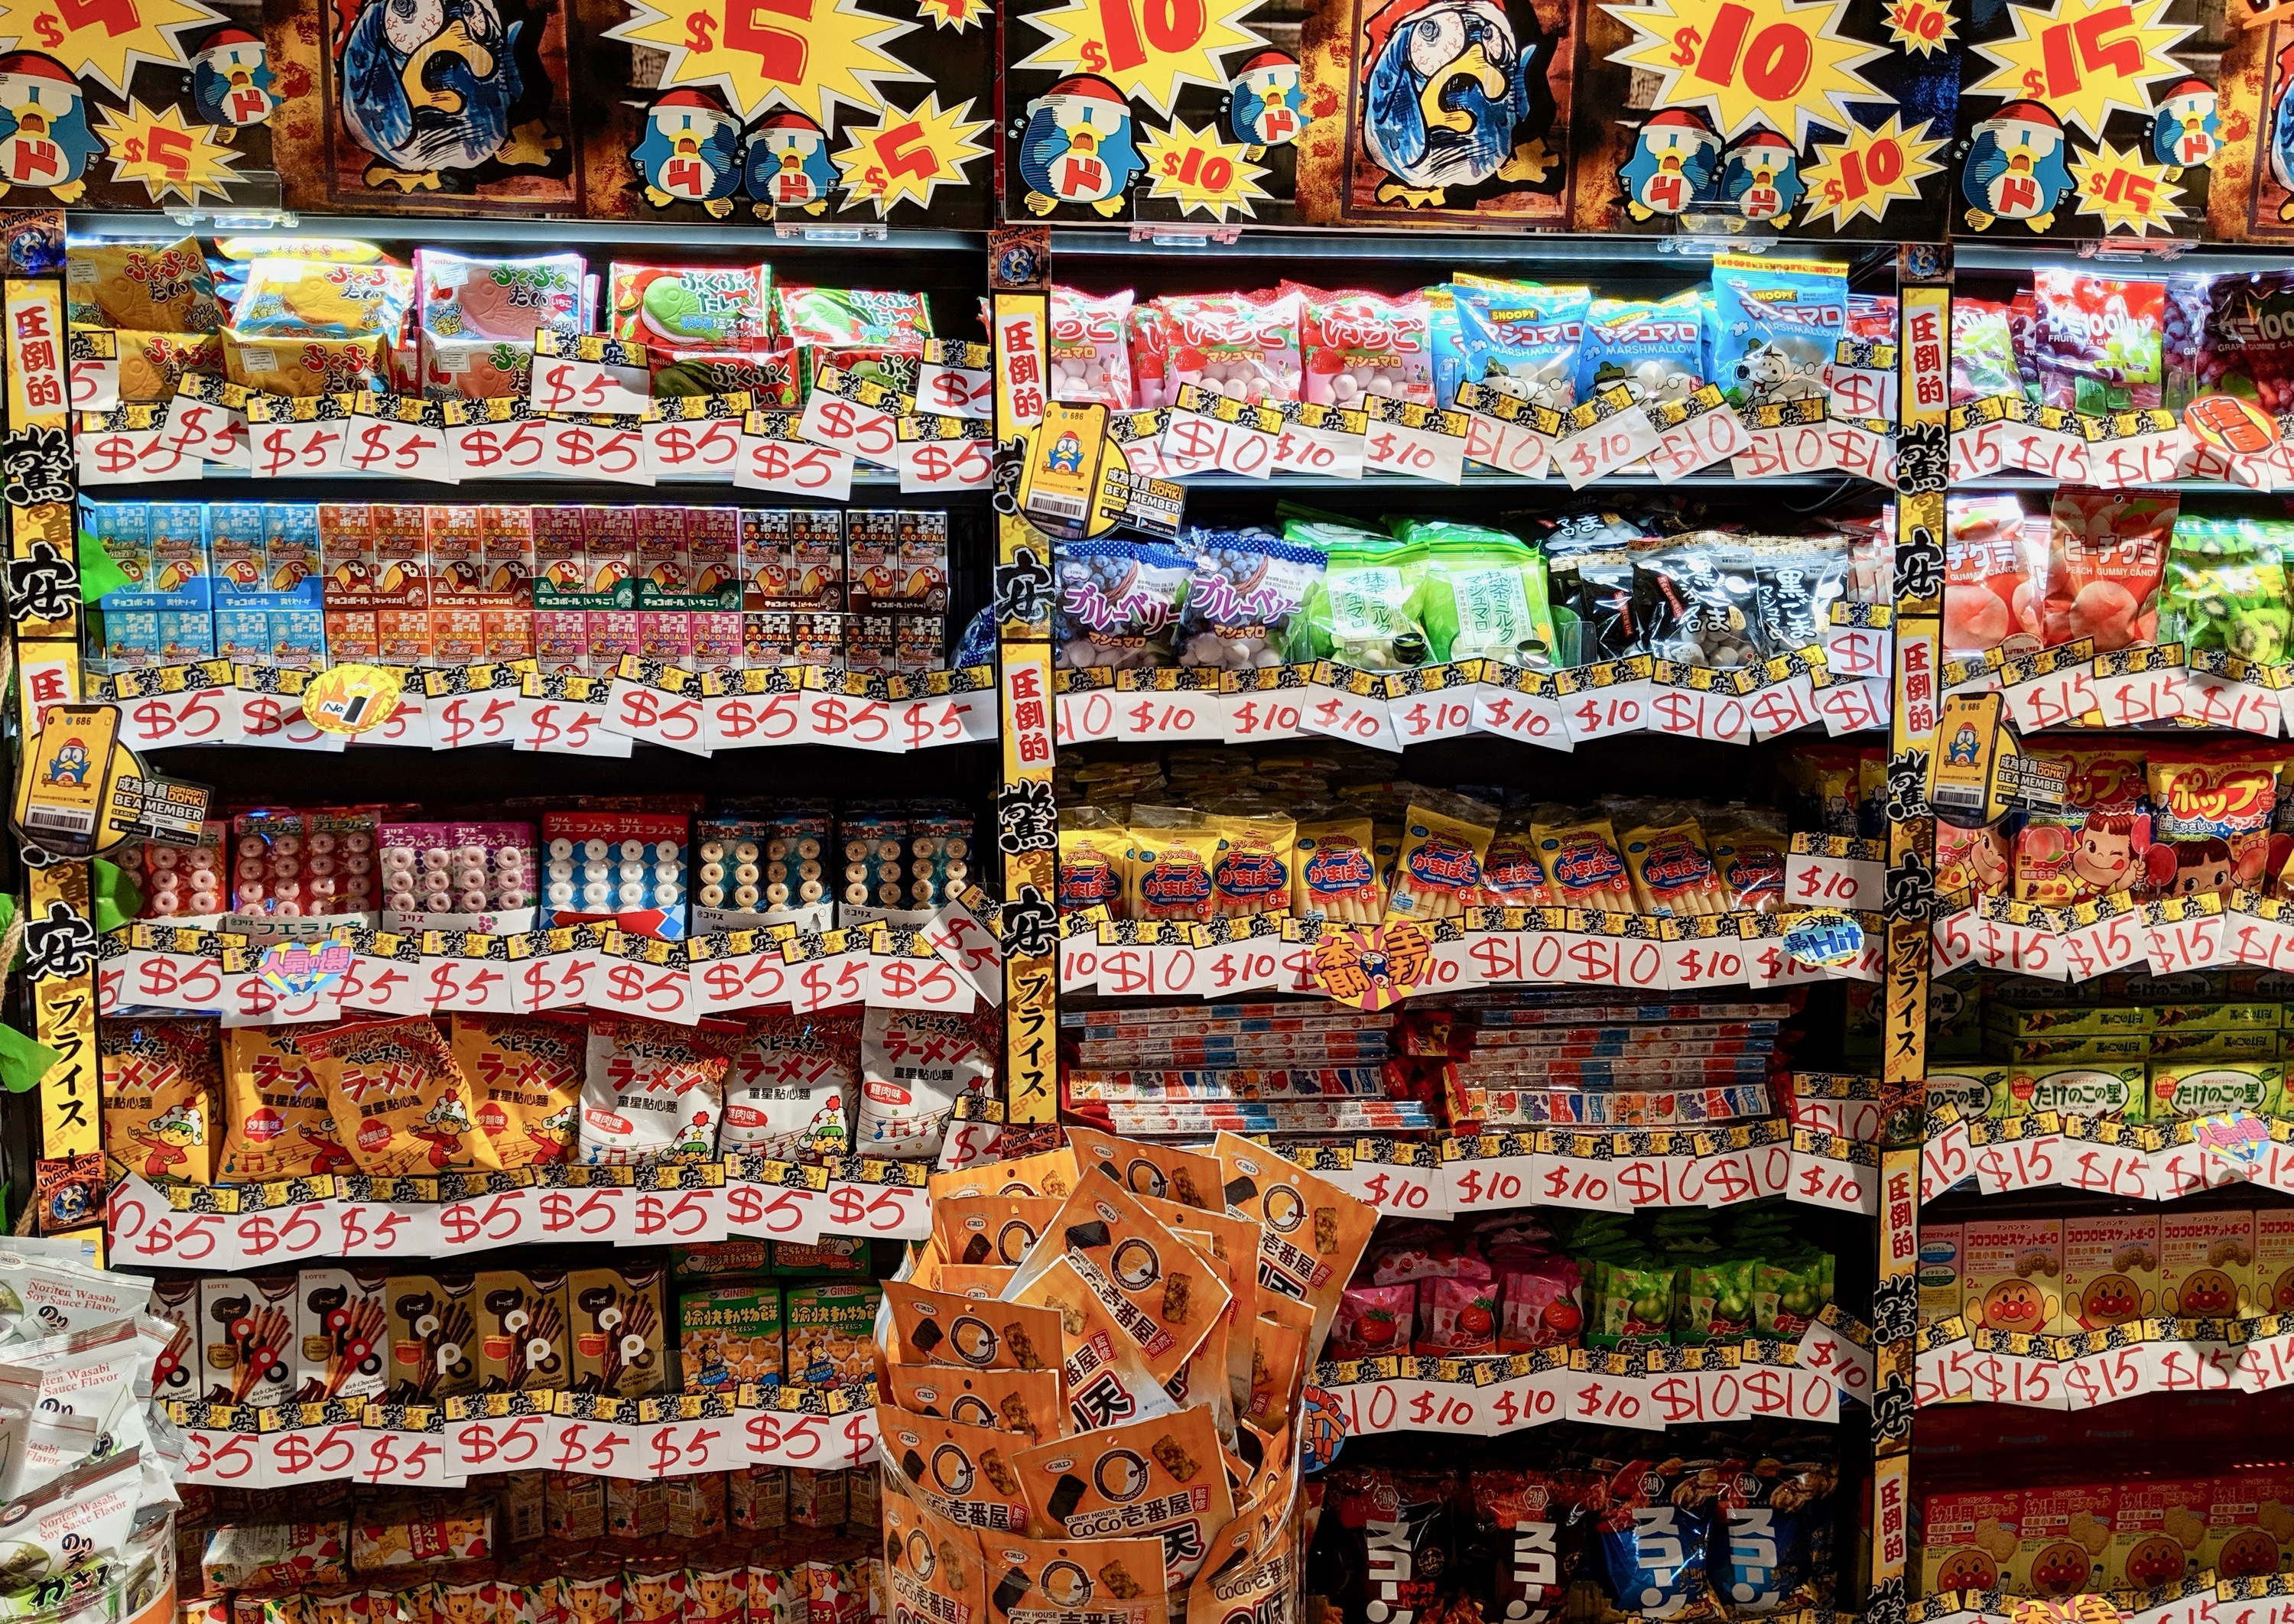 Don Don Donki is now open in Causeway Bay